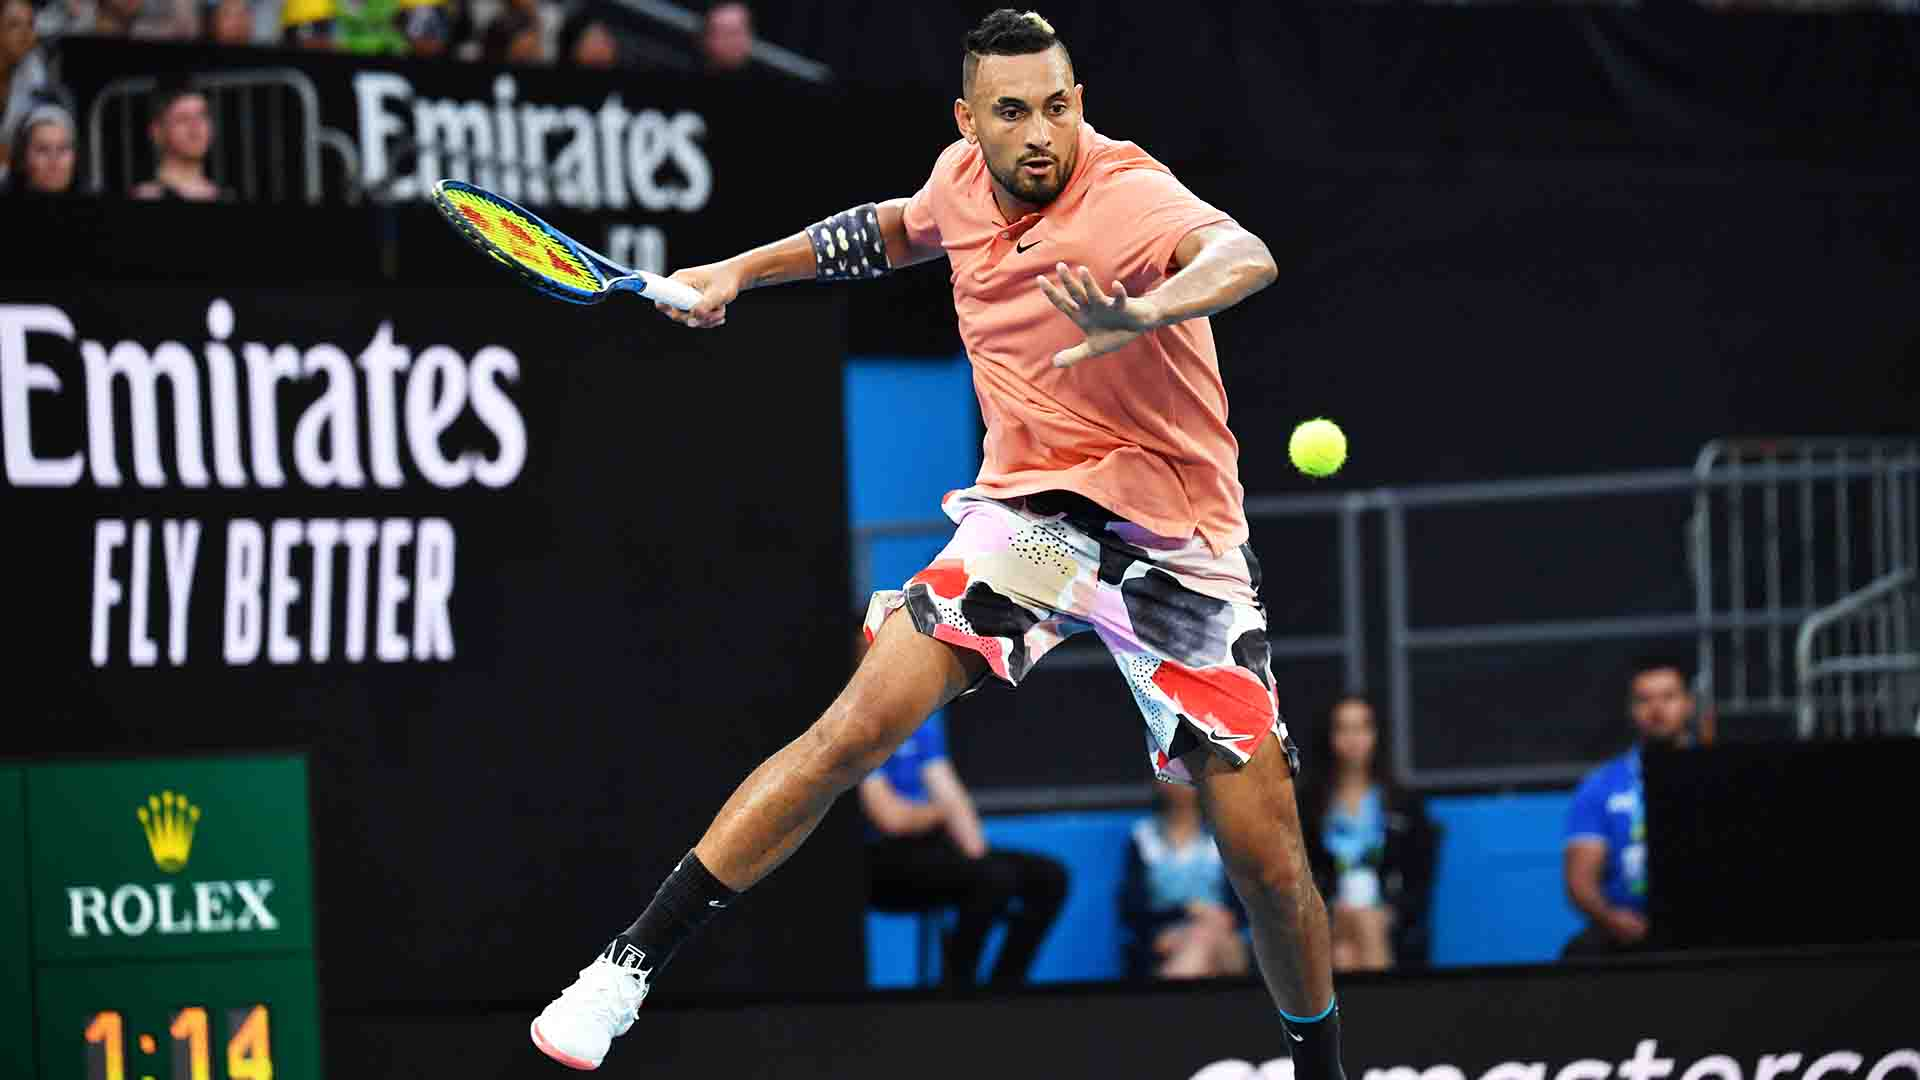 <a href='https://www.atptour.com/en/players/nick-kyrgios/ke17/overview'>Nick Kyrgios</a> owns a 3-0 tie-break record at this year's <a href='https://www.atptour.com/en/tournaments/australian-open/580/overview'>Australian Open</a>.